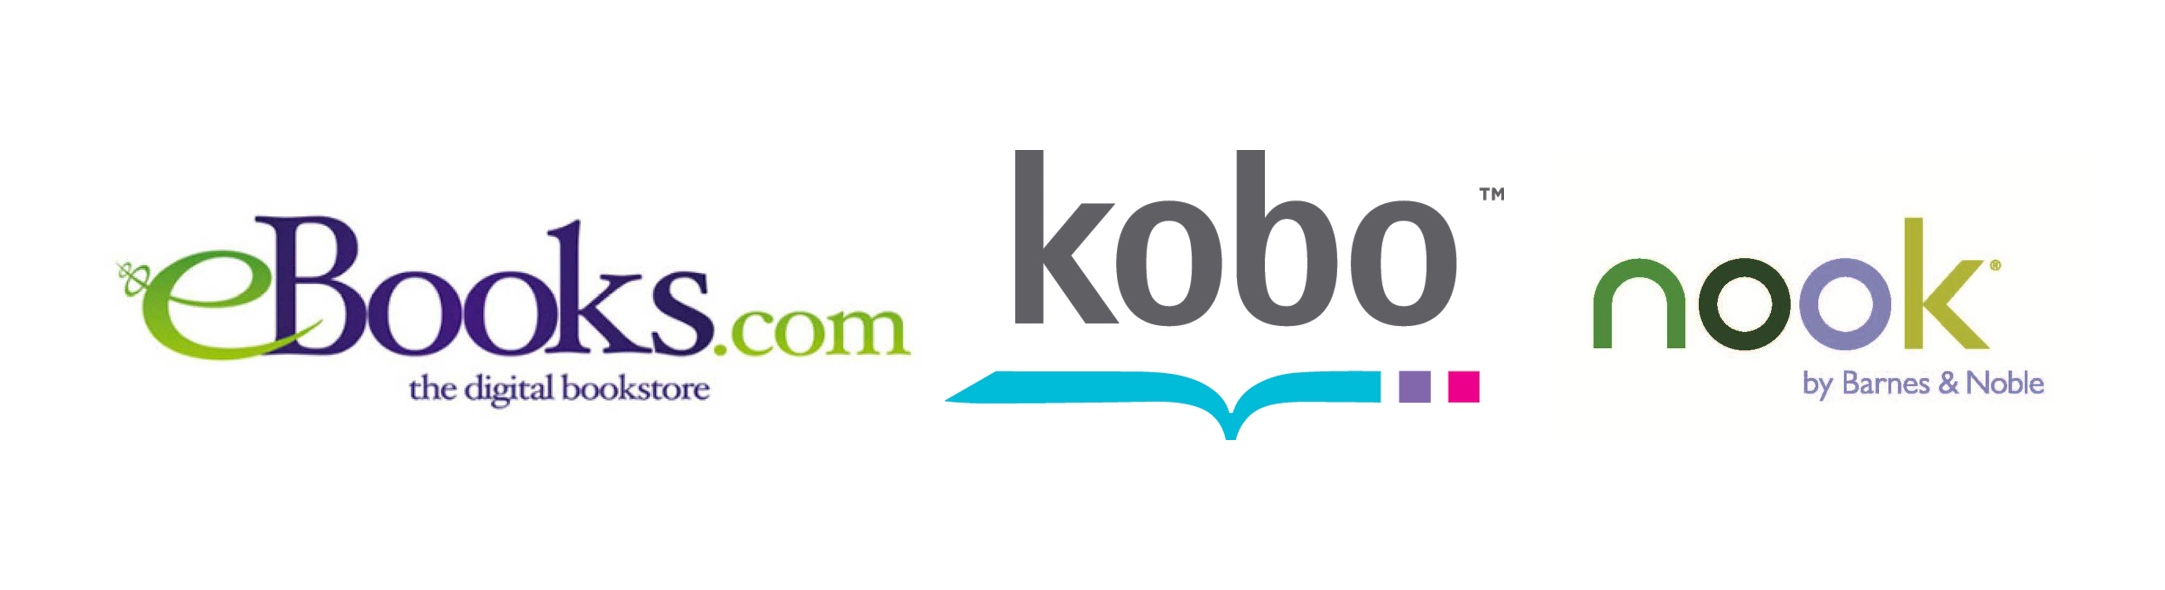 Ebook News Channel View Publications And Multilingual Matters